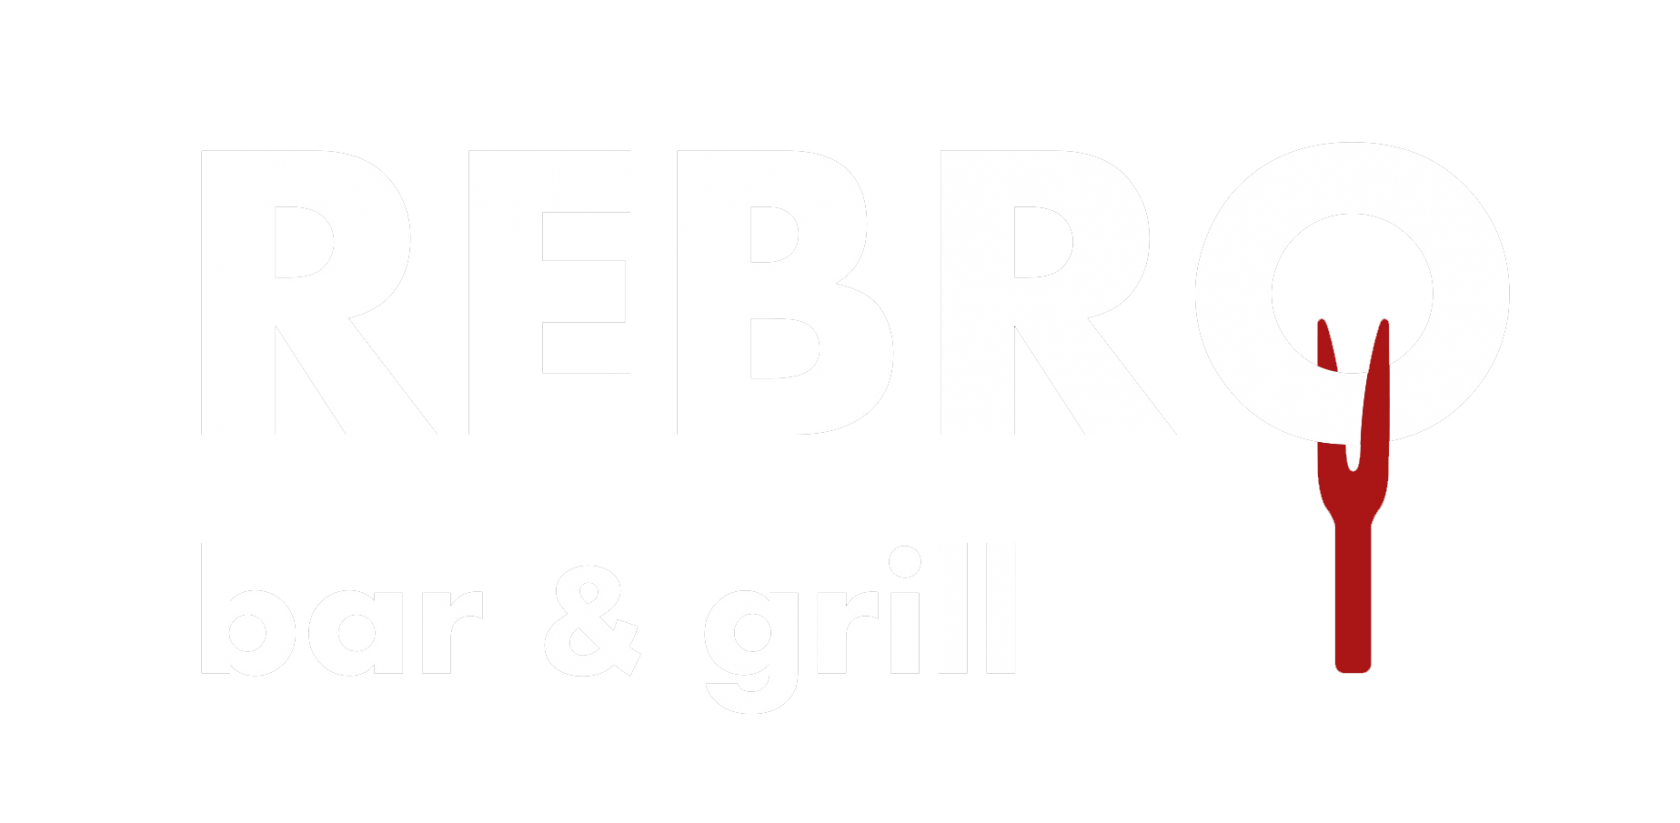 REBRO bar&grill